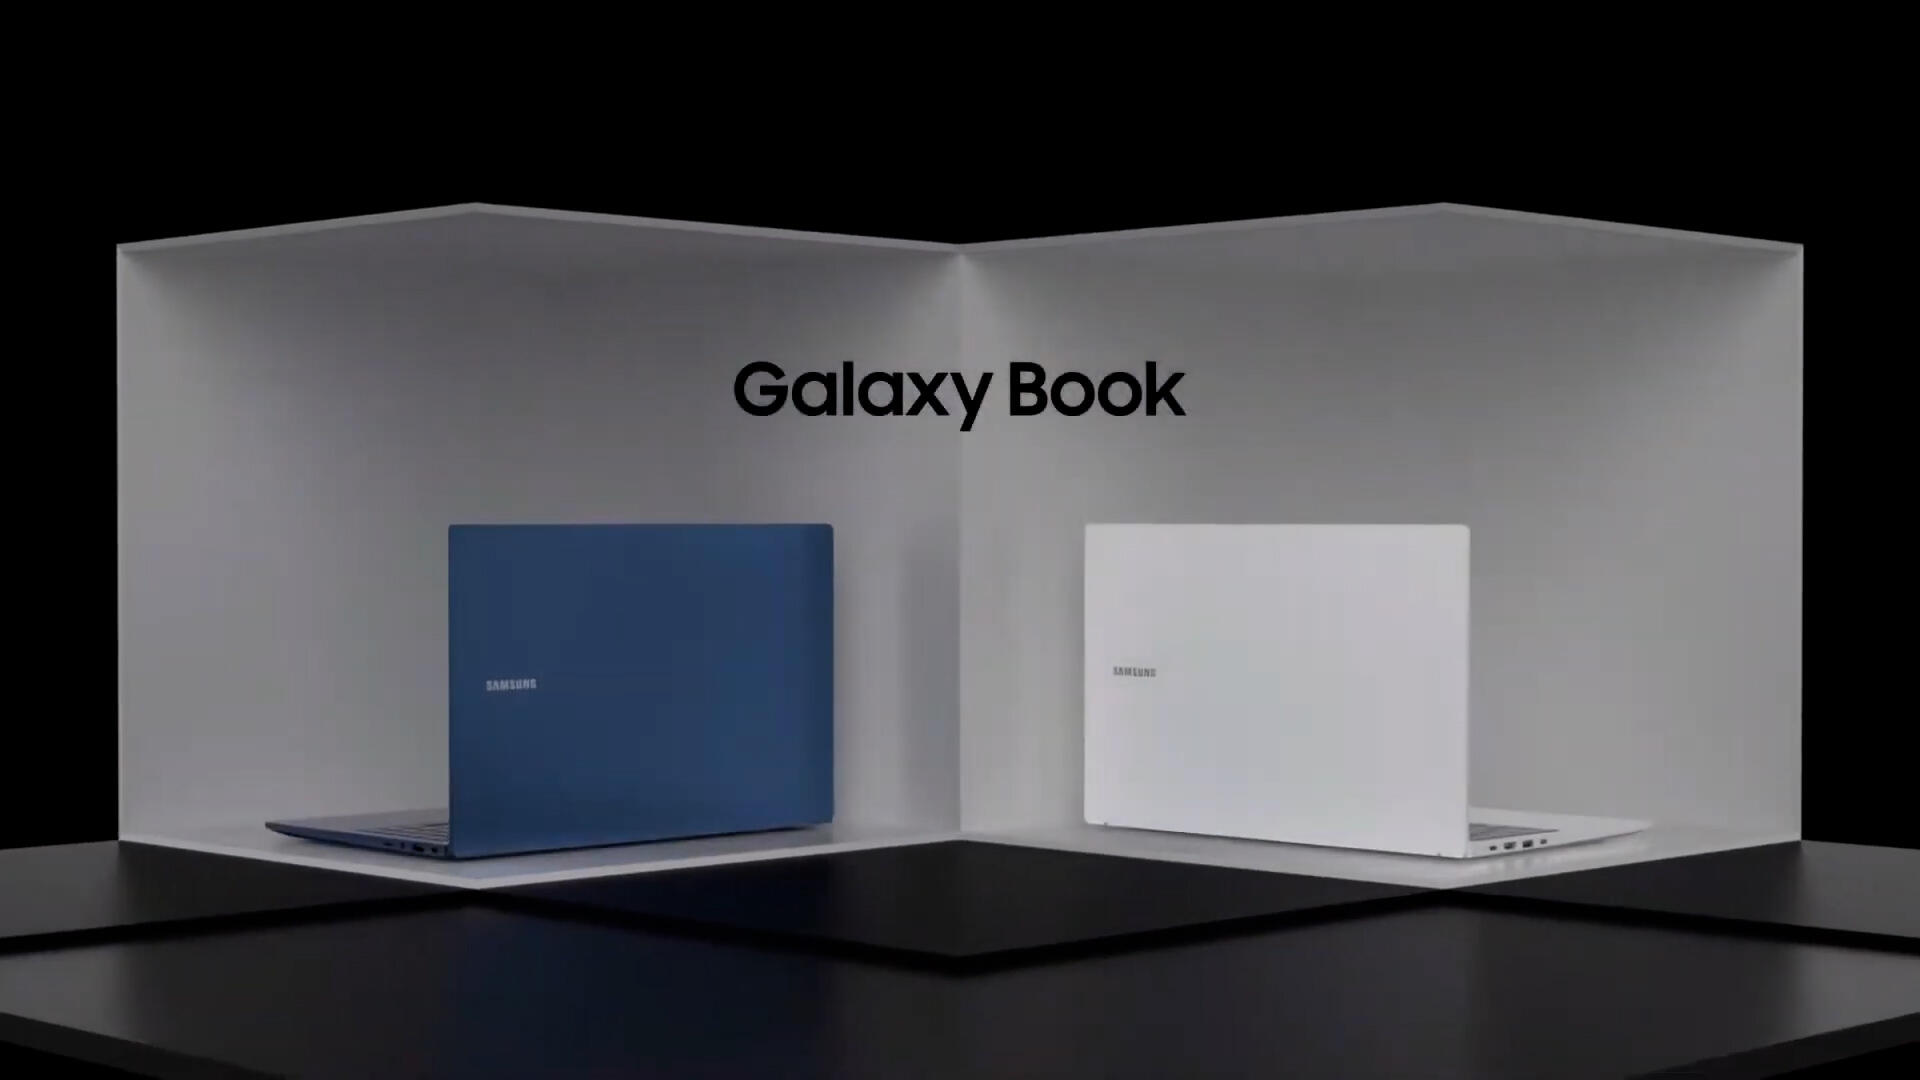 Video: Samsung unveils Galaxy Book and Galaxy Book Odyssey